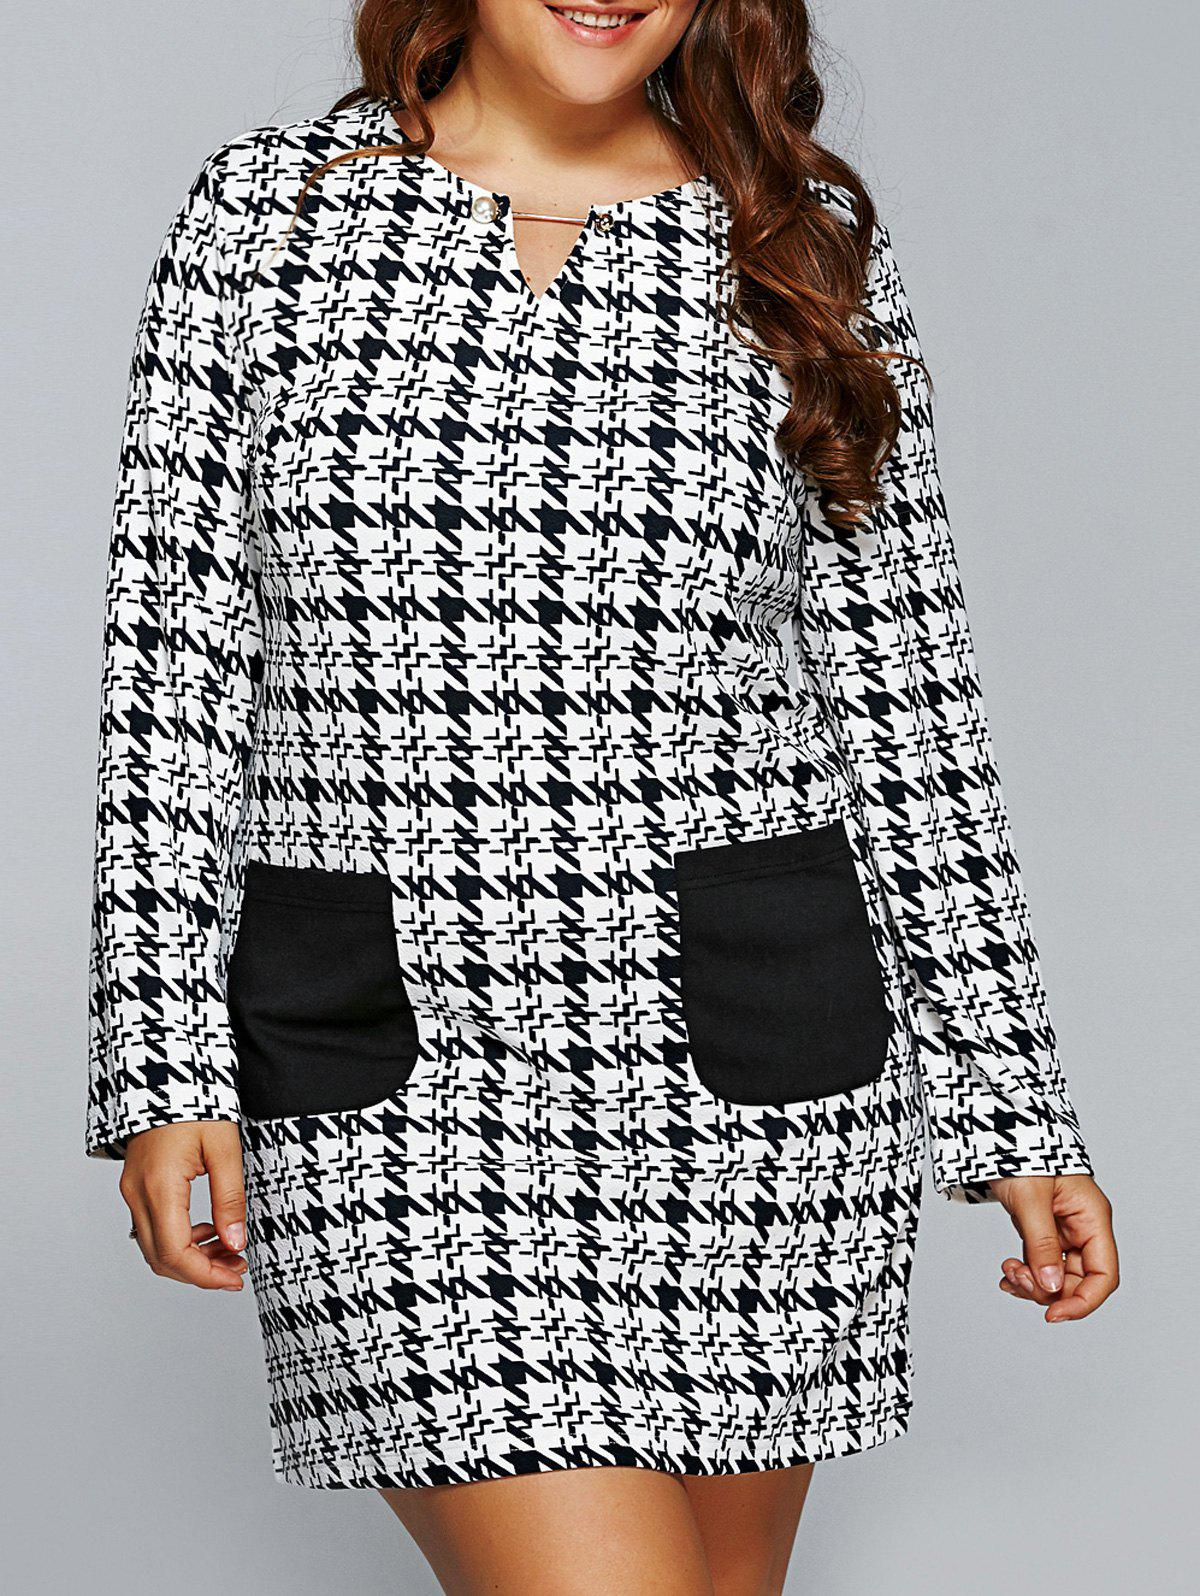 Houndstooth Print Twin Pockets Shift DressWomen<br><br><br>Size: 2XL<br>Color: WHITE AND BLACK